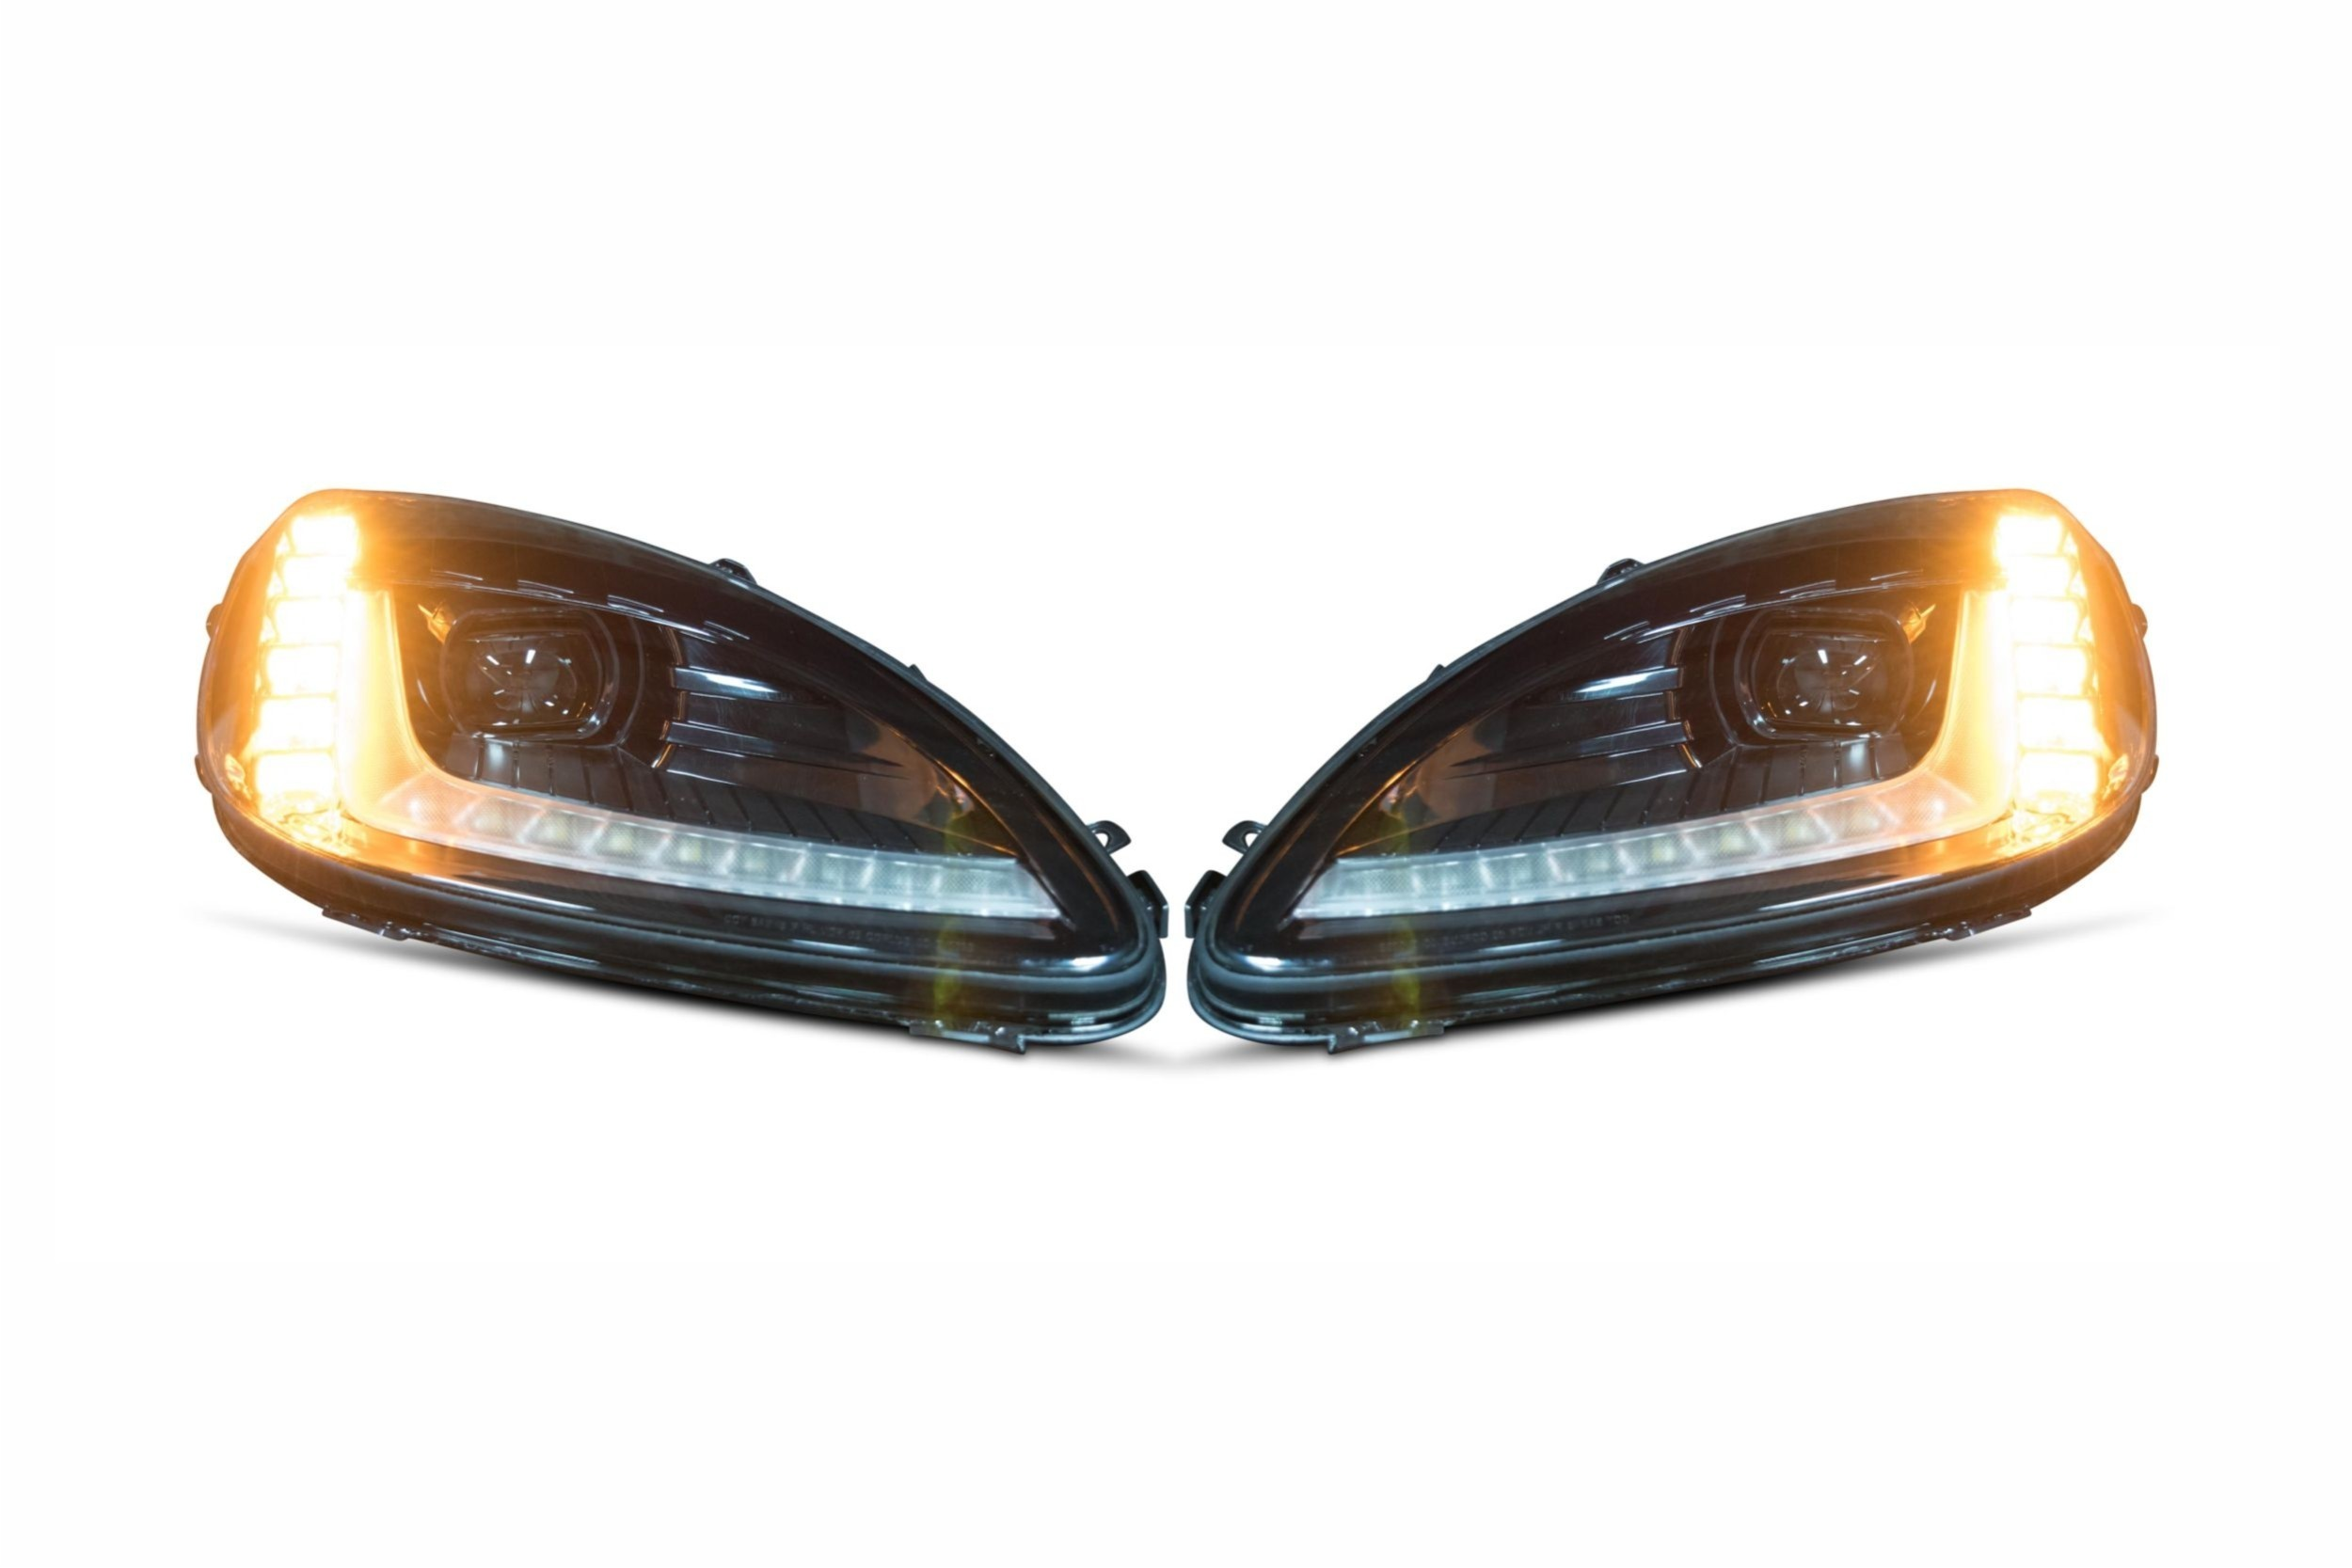 C6 Corvette 05-13, Morimoto XB LED C7 Style Headlight Replacement Assemblies, Set of 2